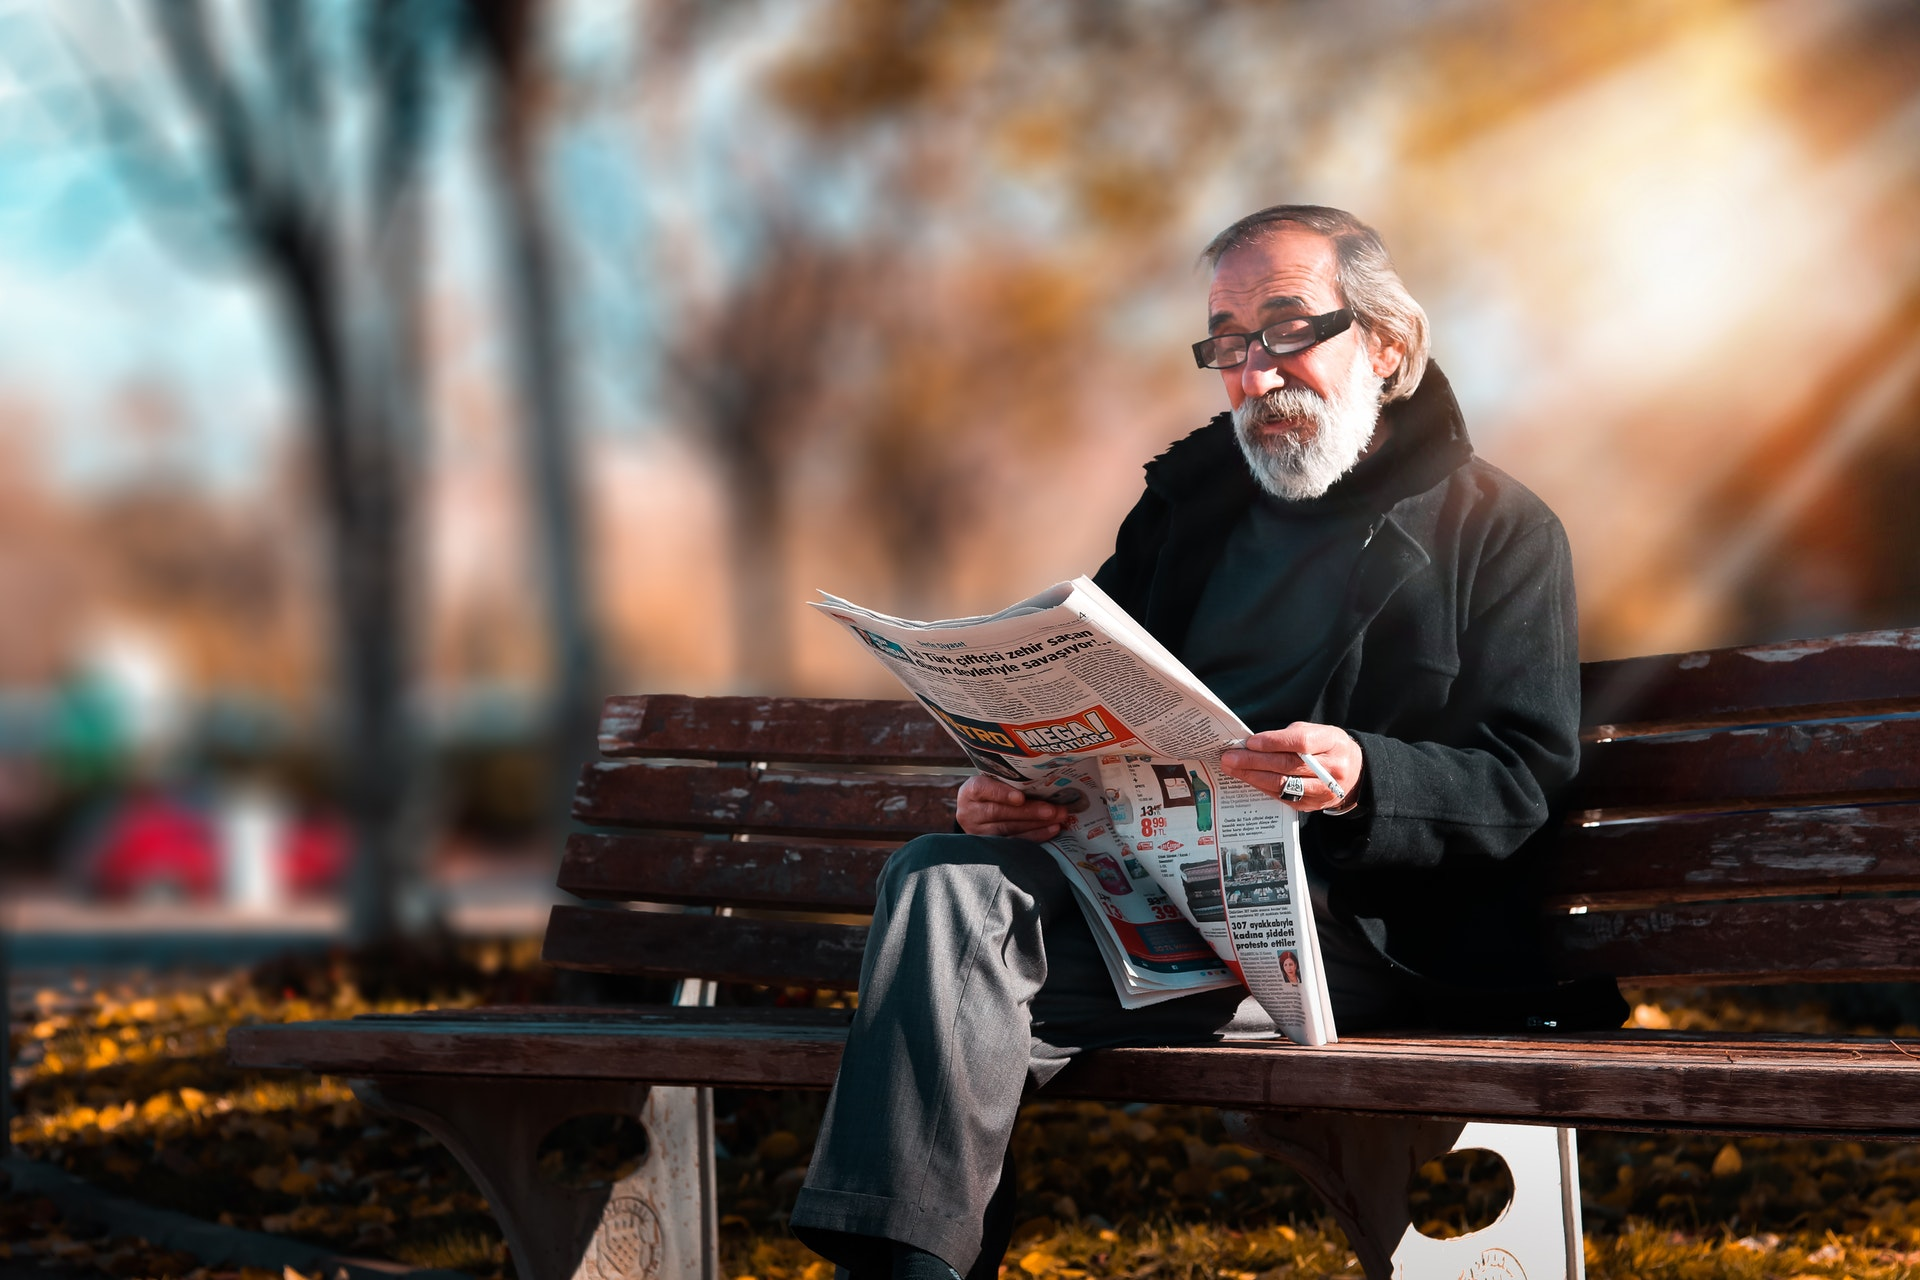 photo-of-man-reading-newspaper-1652340